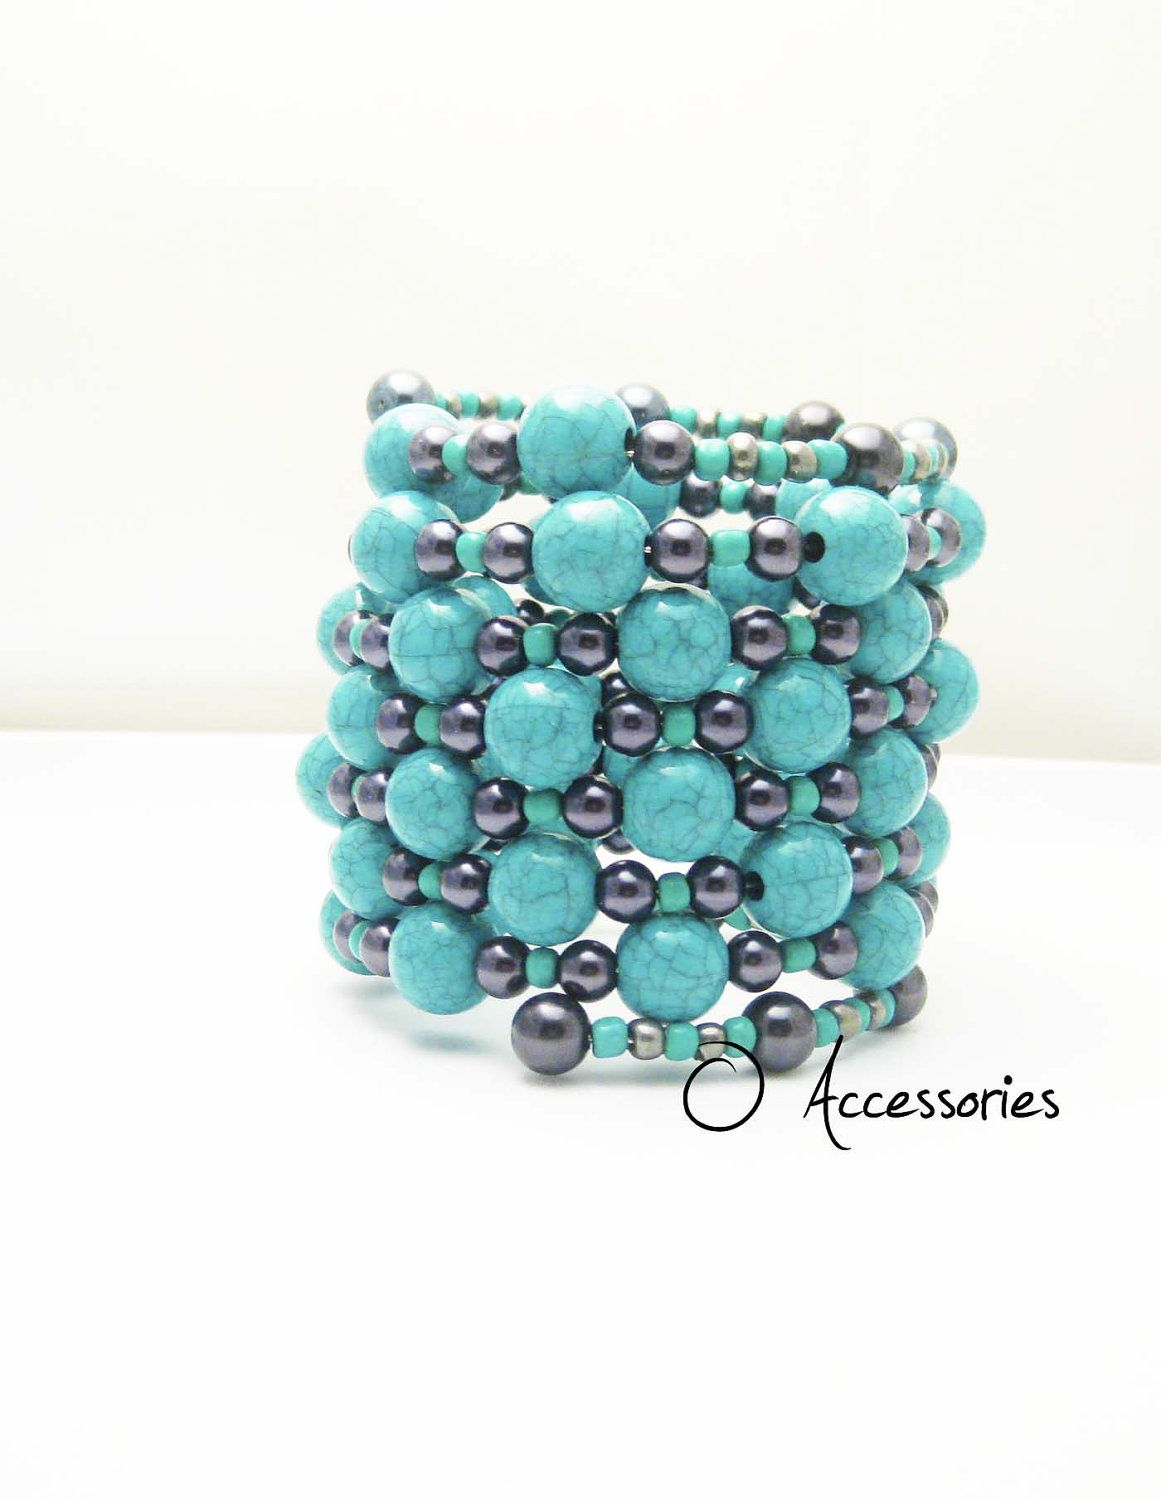 Aqua Blue and Gray Memory Wire Cuff Bracelet | Pinterest | Aqua blue ...